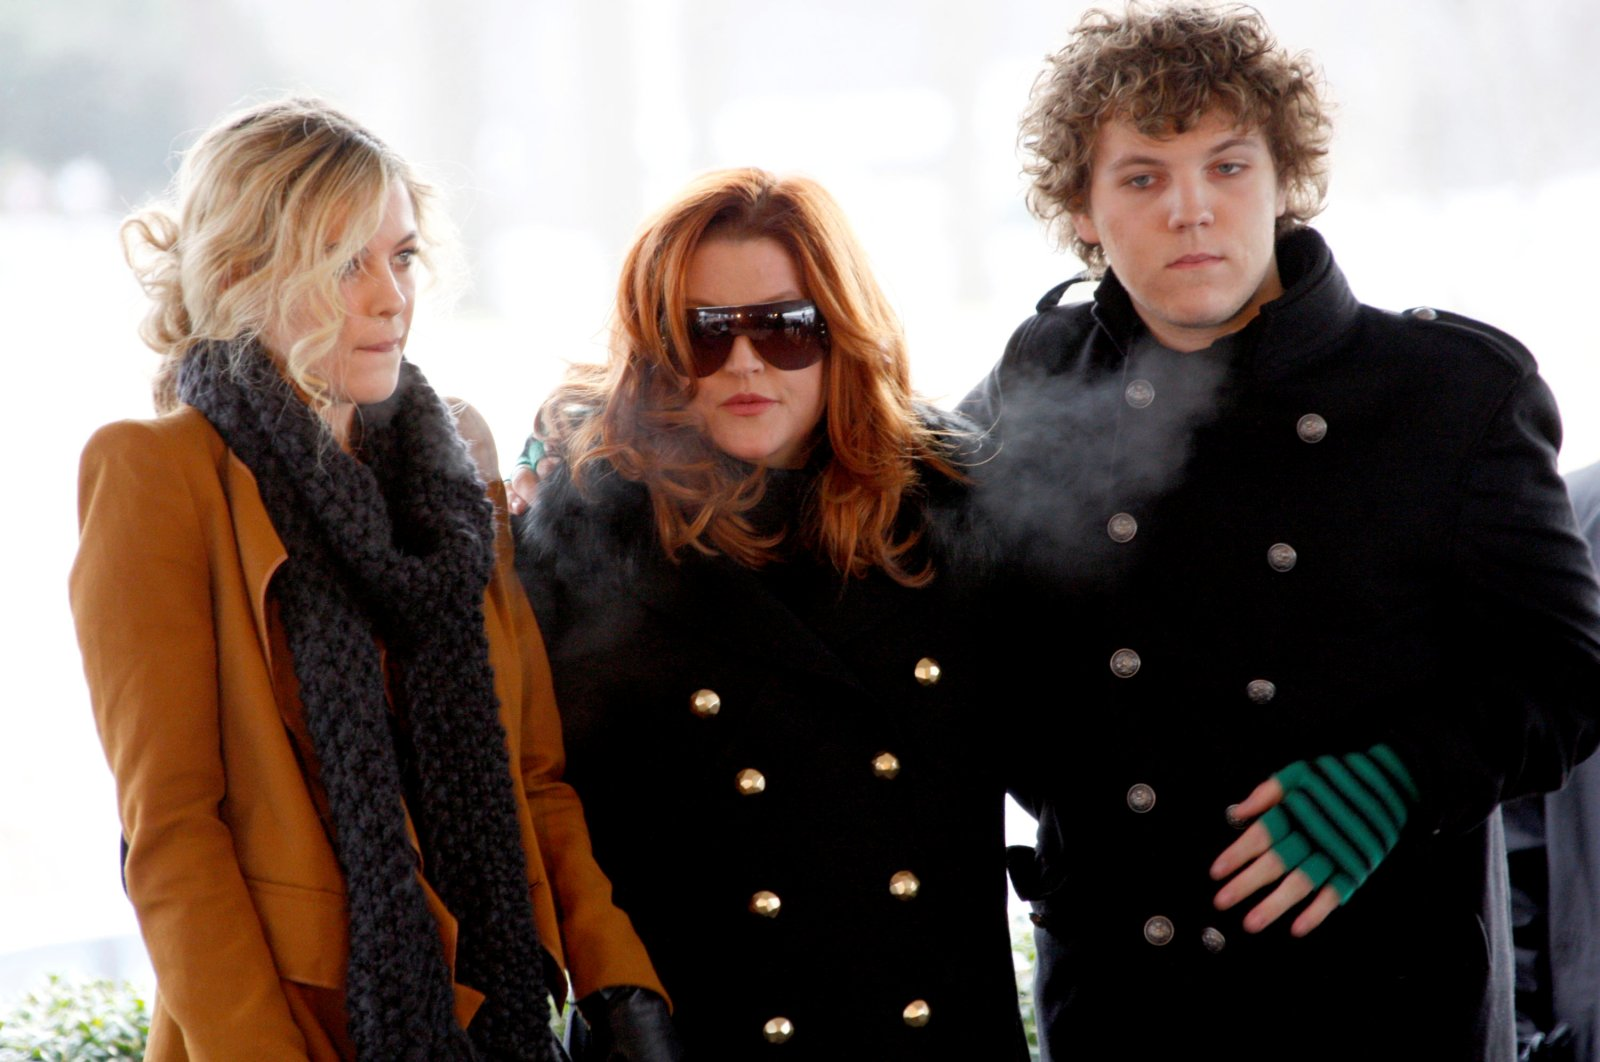 Lisa Marie Presley, with her children Riley and Benjamin Keough, attend the 75th birthday celebration for Elvis Presley in Memphis, Tennessee Jan. 8, 2010. (Reuters Photo)